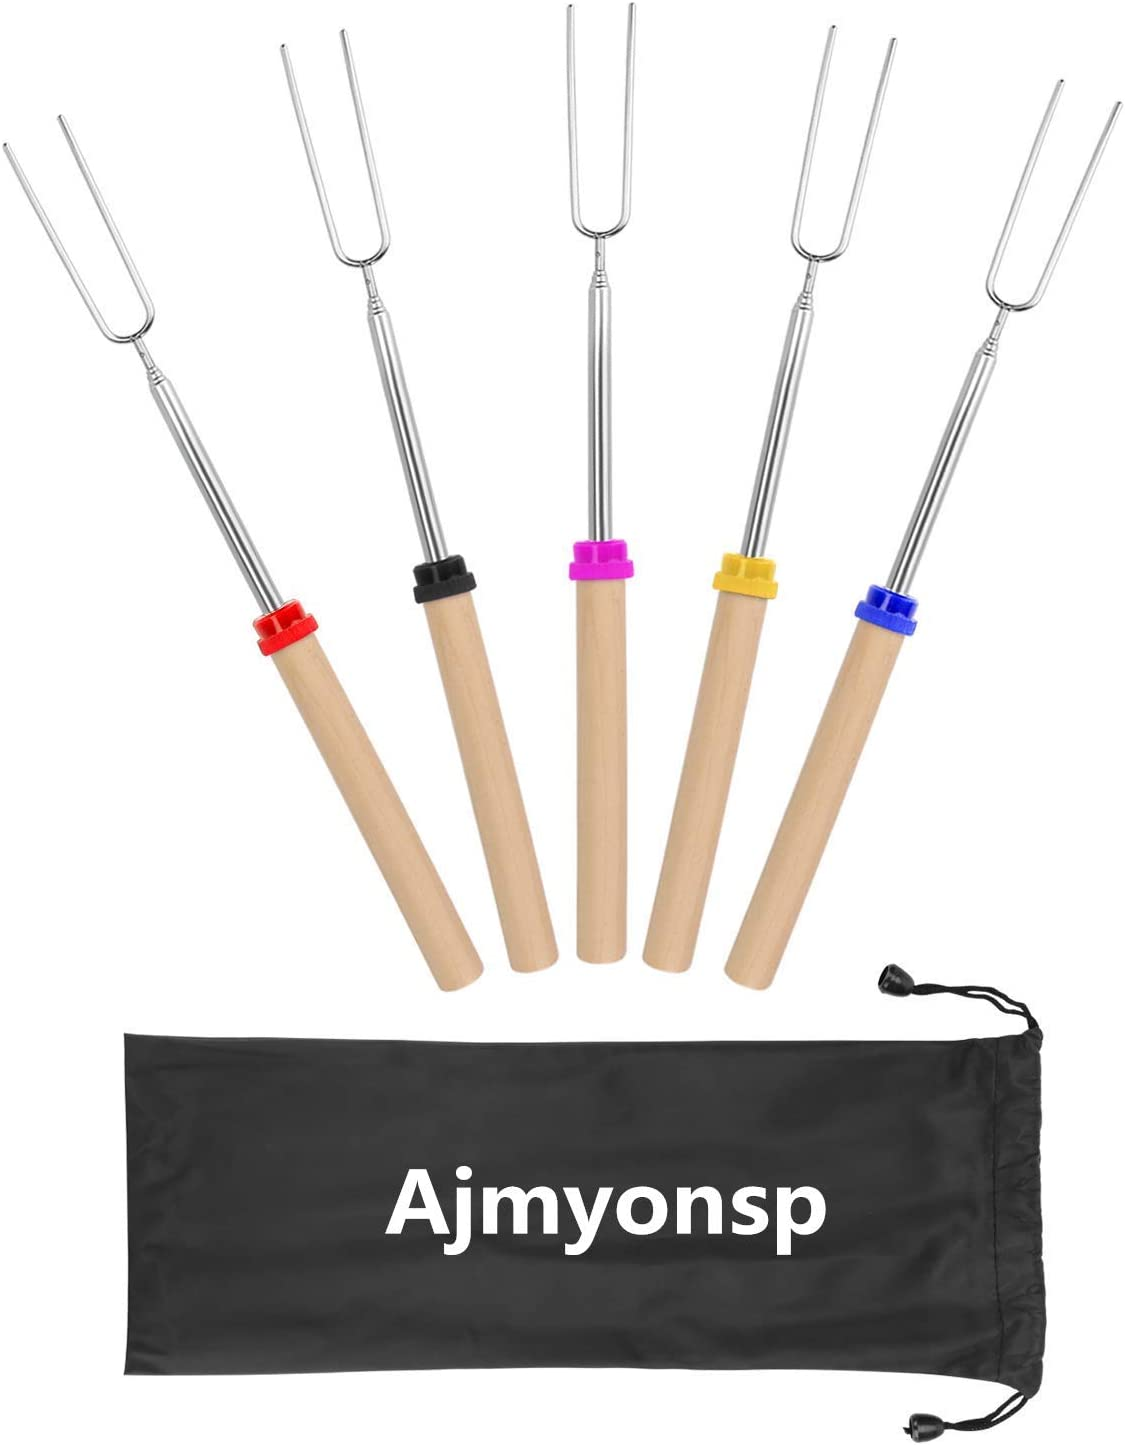 VLFriday Marshmallow Roasting Sticks with Wooden Handle Extendable Forks Set of 5 PcsTelescoping Smores Skewers for Campfire Firepit and Sausage BBQ 32 Inch